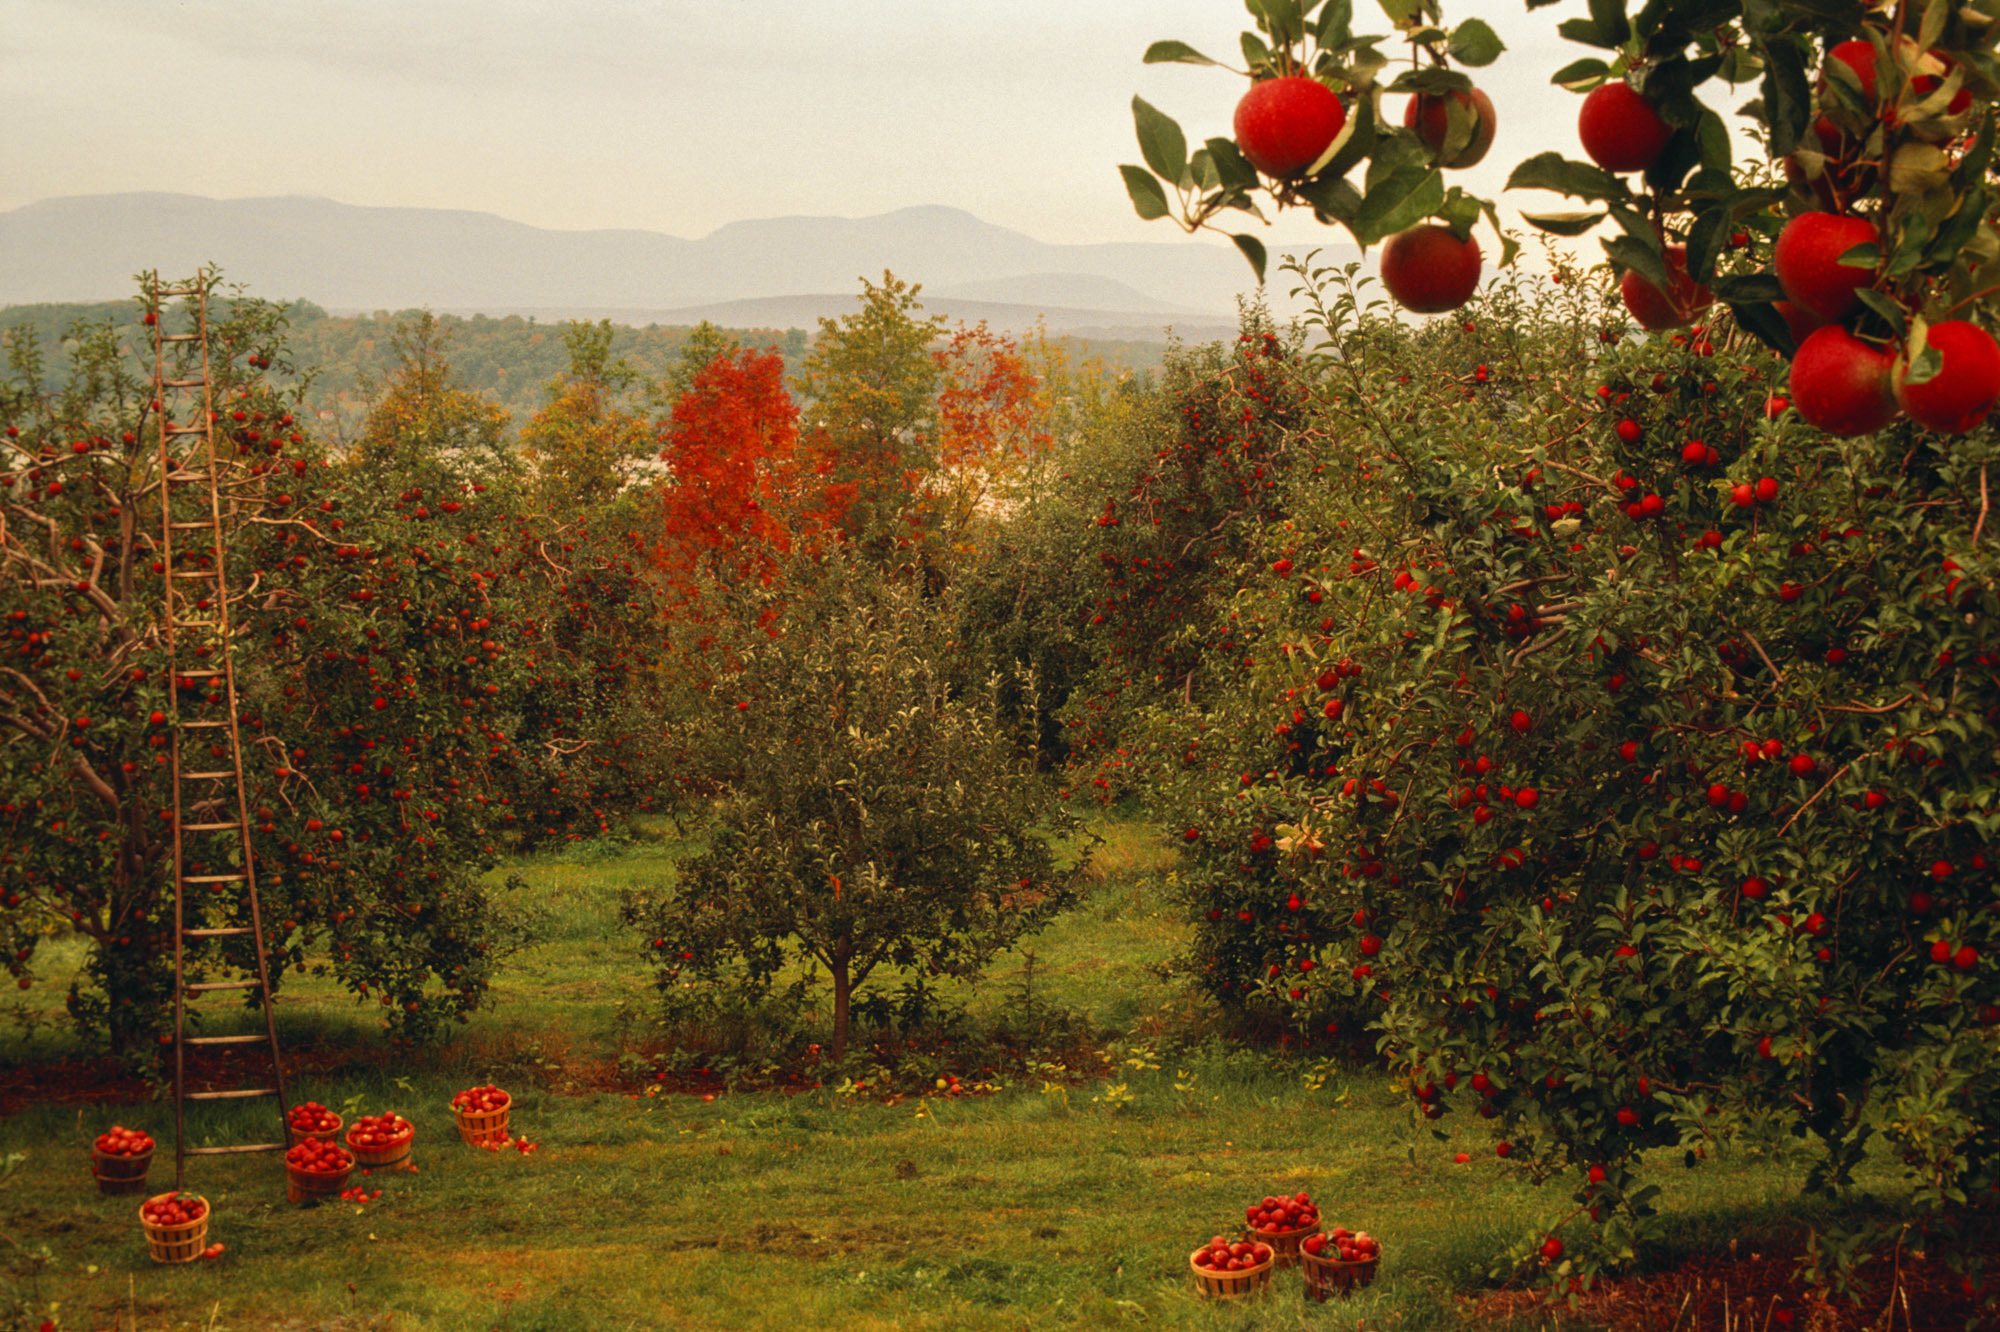 New technologies and a changing climate are altering the way apples are grown in places like New York's Hudson Valley and across the country. (Jake Rajs/Getty Images)